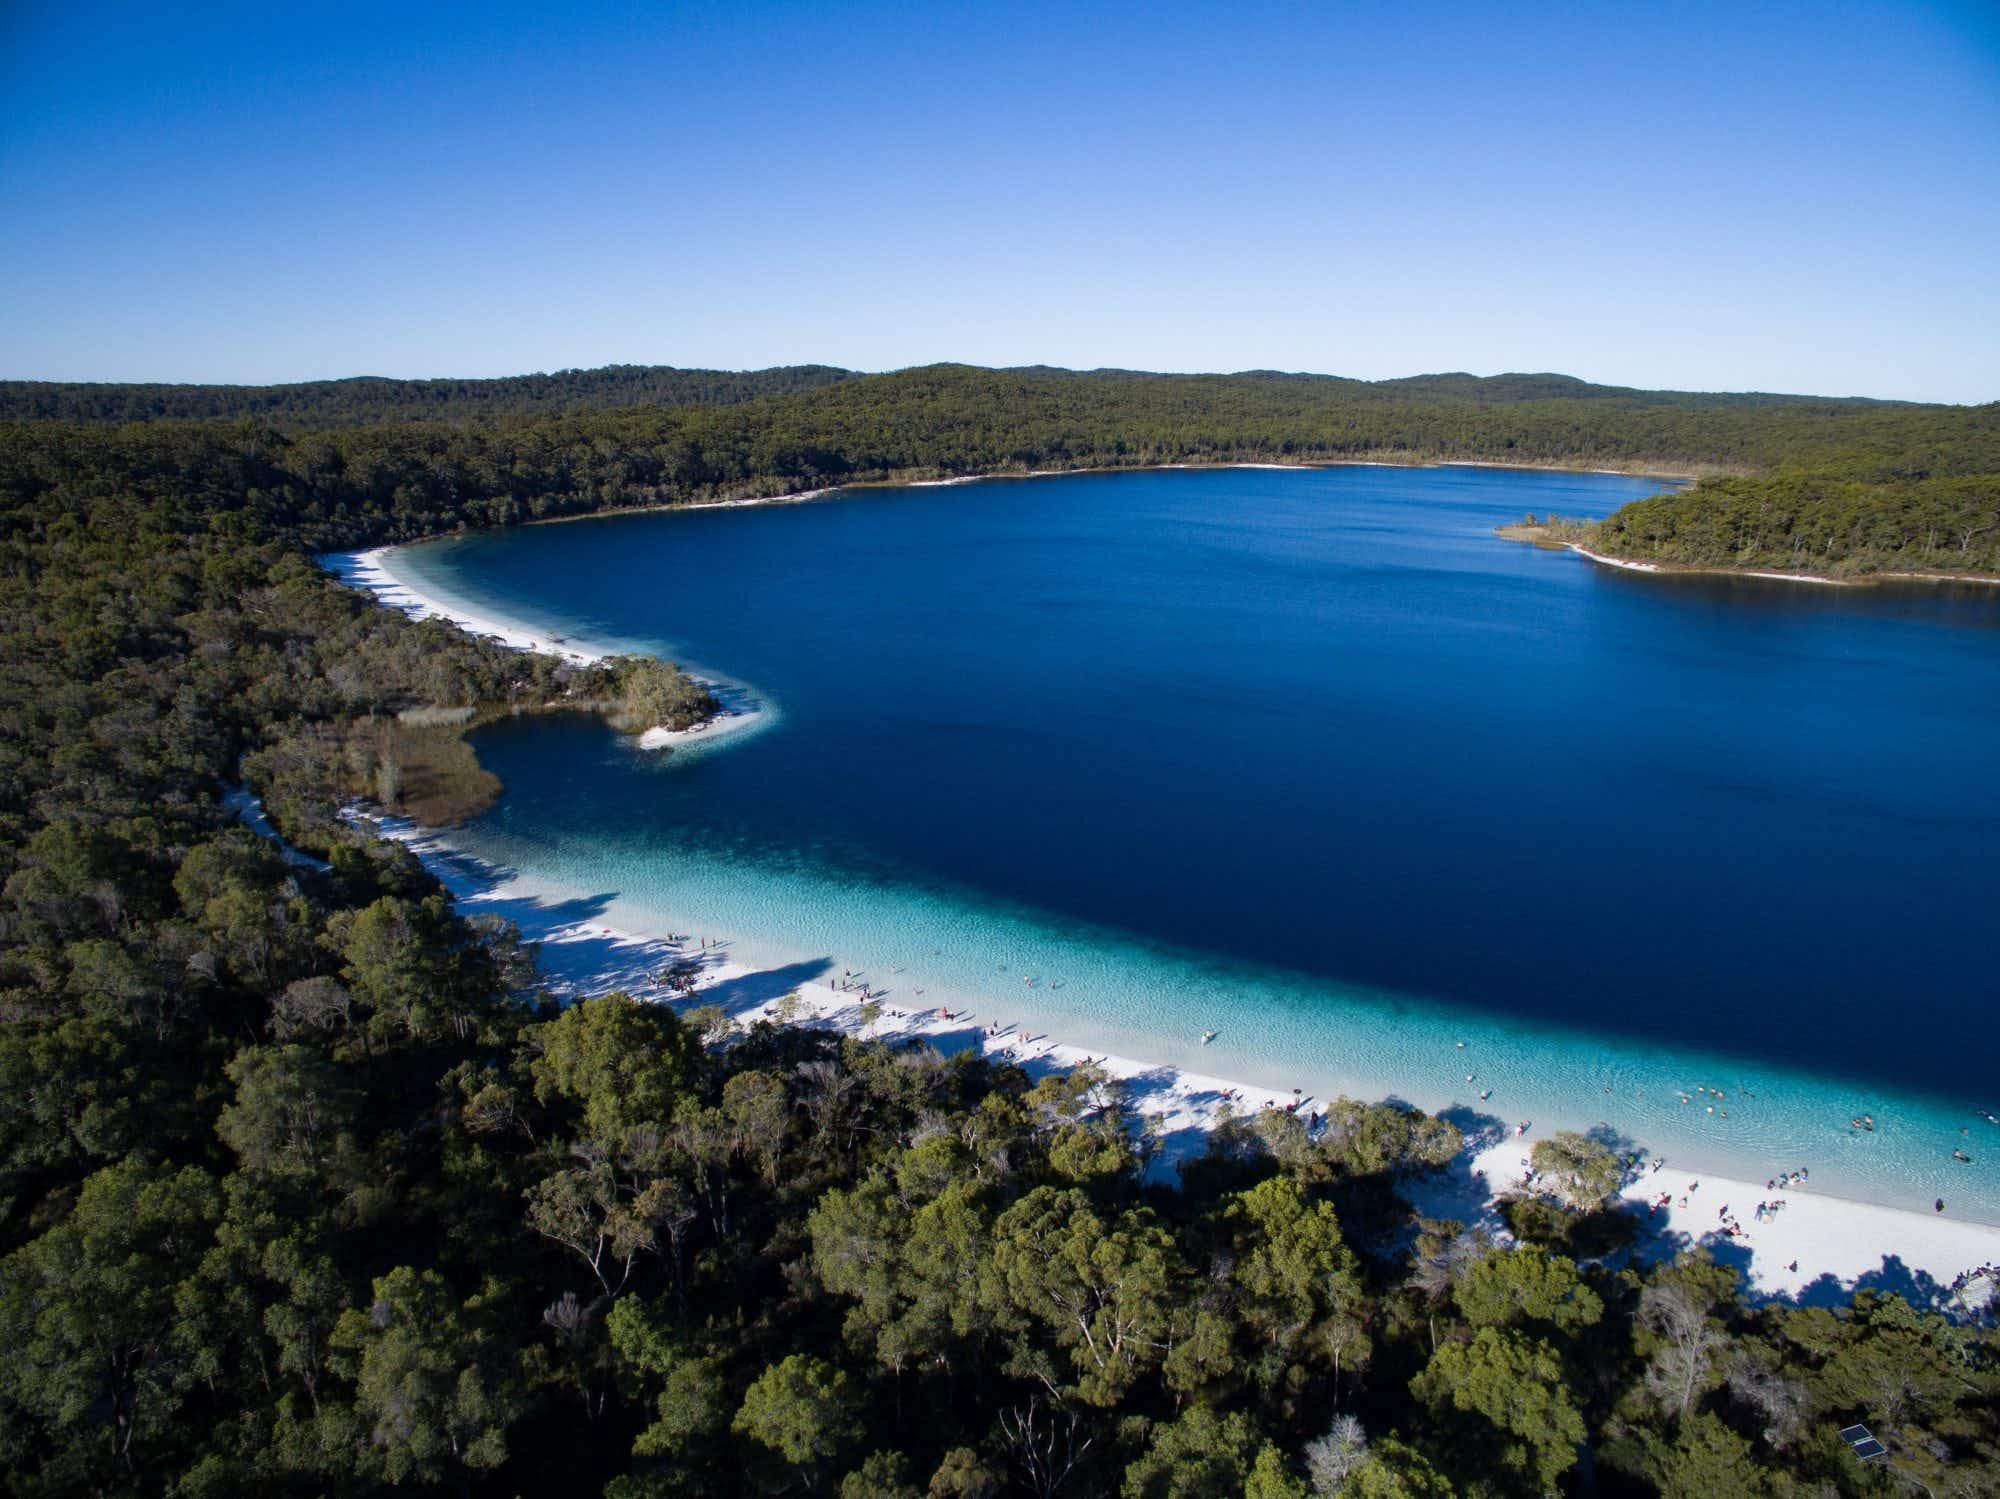 Celebrating 25 years of Unesco protection for this unique Australian island